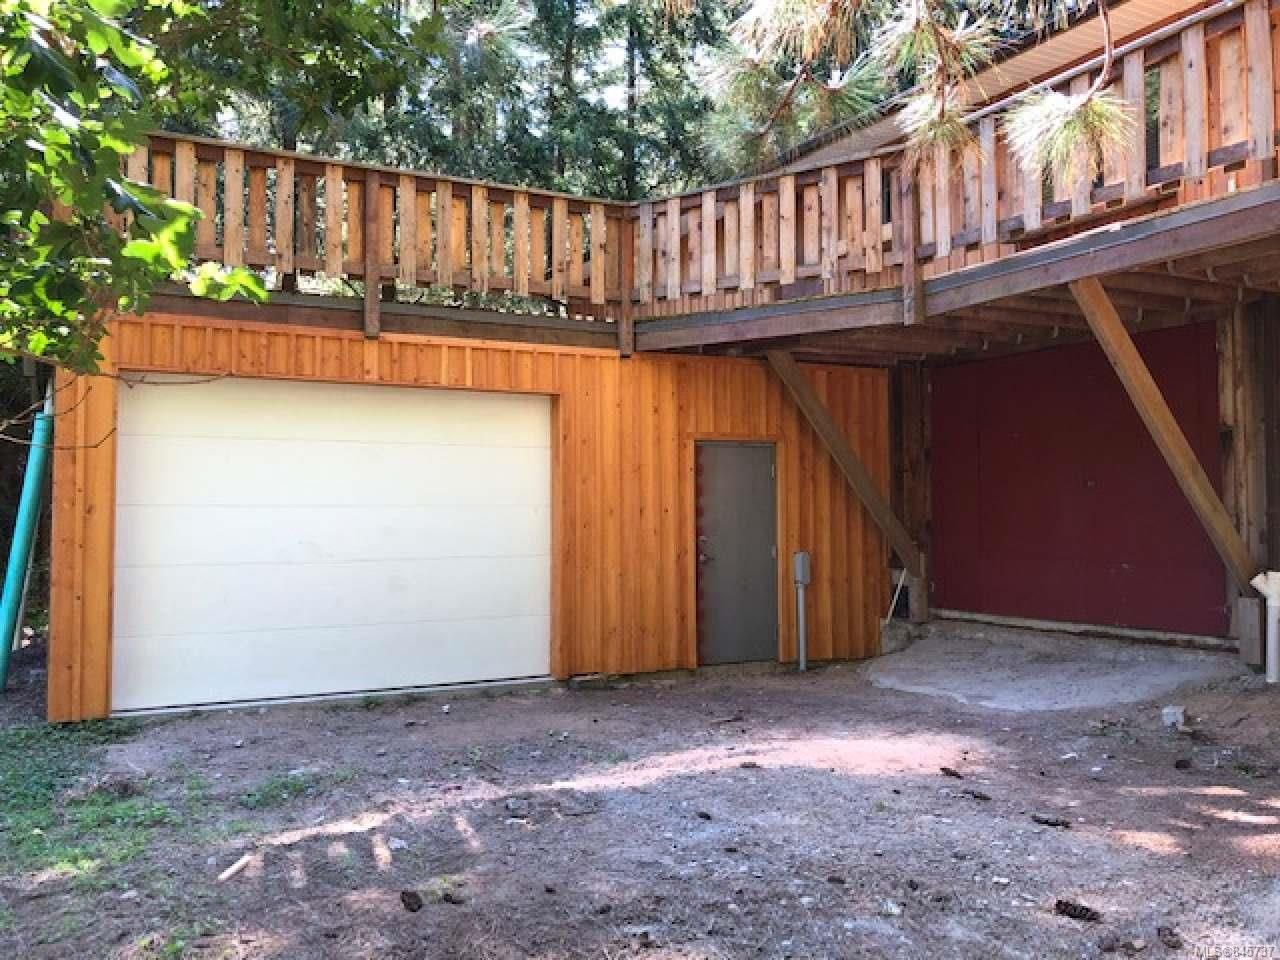 Photo 3: Photos: 3125 Rinvold Rd in QUALICUM BEACH: PQ Errington/Coombs/Hilliers House for sale (Parksville/Qualicum)  : MLS®# 845737